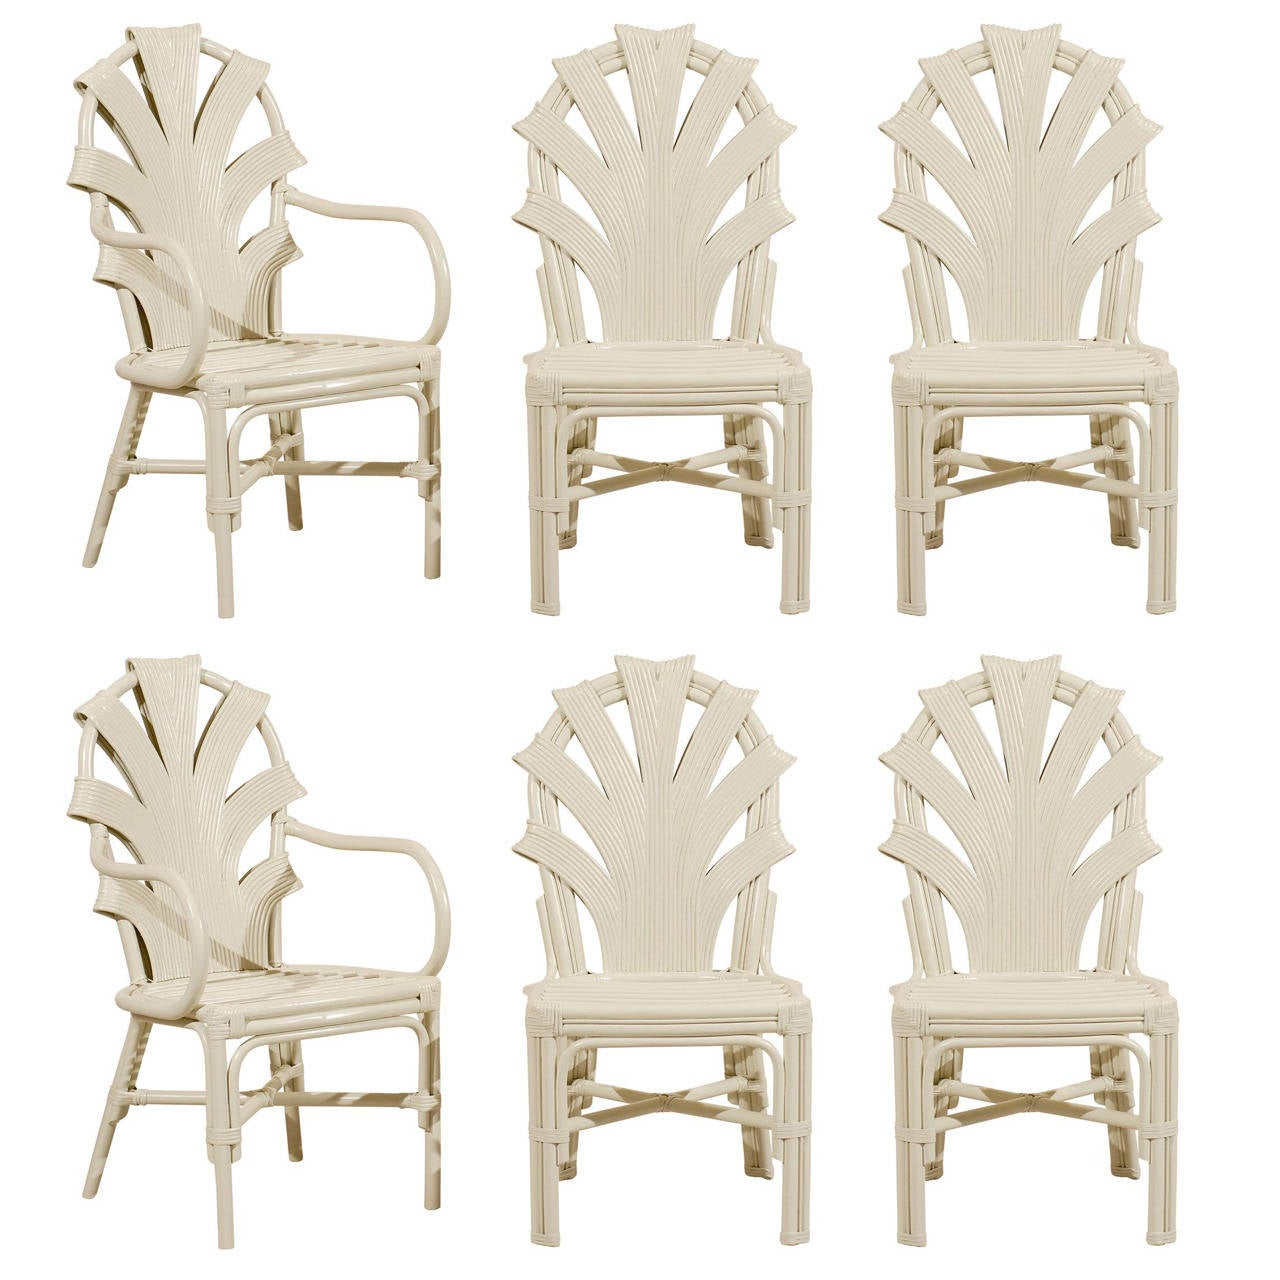 Exceptional set of six vintage rattan dining chairs in for Modern wicker dining chairs